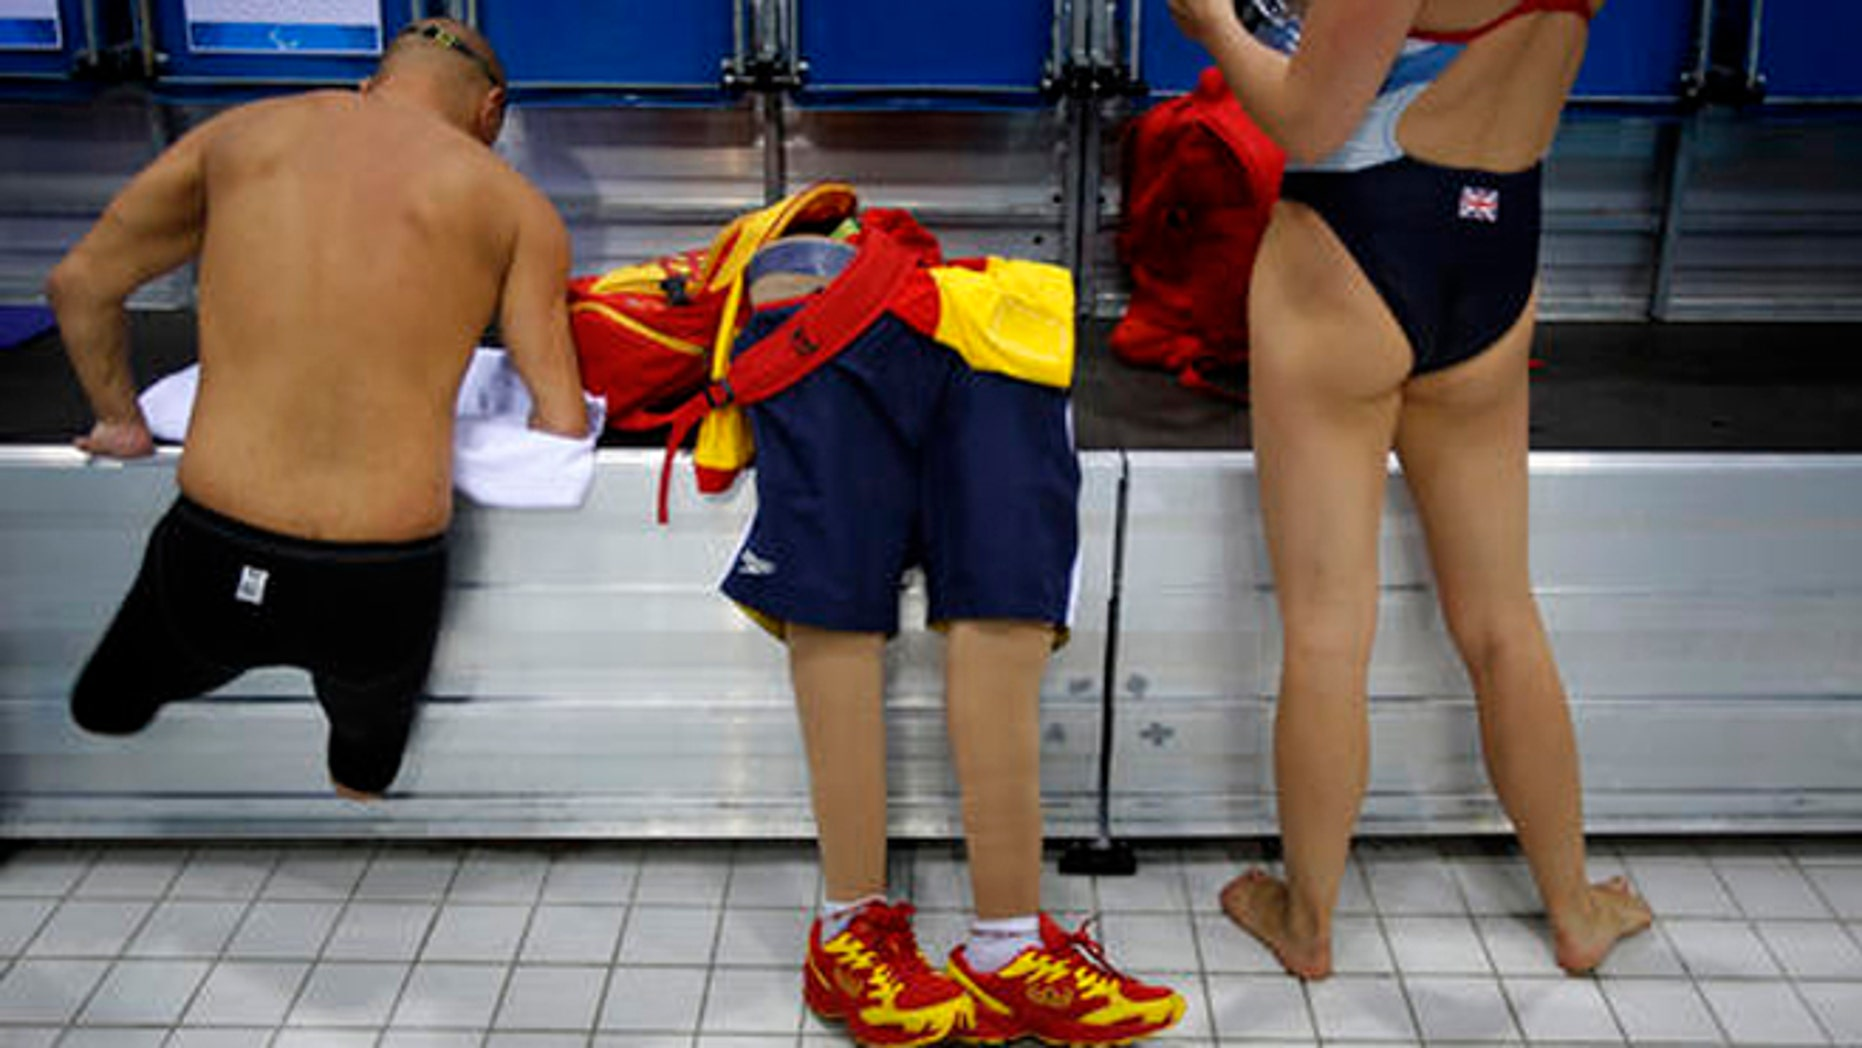 FILE - In this Aug. 31, 2012 file photo, Spain's Xabi Torres jumps next to his prosthesis as he leaves the swimming pool after training ahead of the competition at the 2012 Paralympics Olympics in London.  The countdown clock for the Paralympic Games in Rio reaches 100 days on Monday with about 4,300 athletes participating, far fewer than the 10,500 in the Olympics. The Paralympic Games open Sept. 7.(AP Photo/Emilio Morenatti, File)